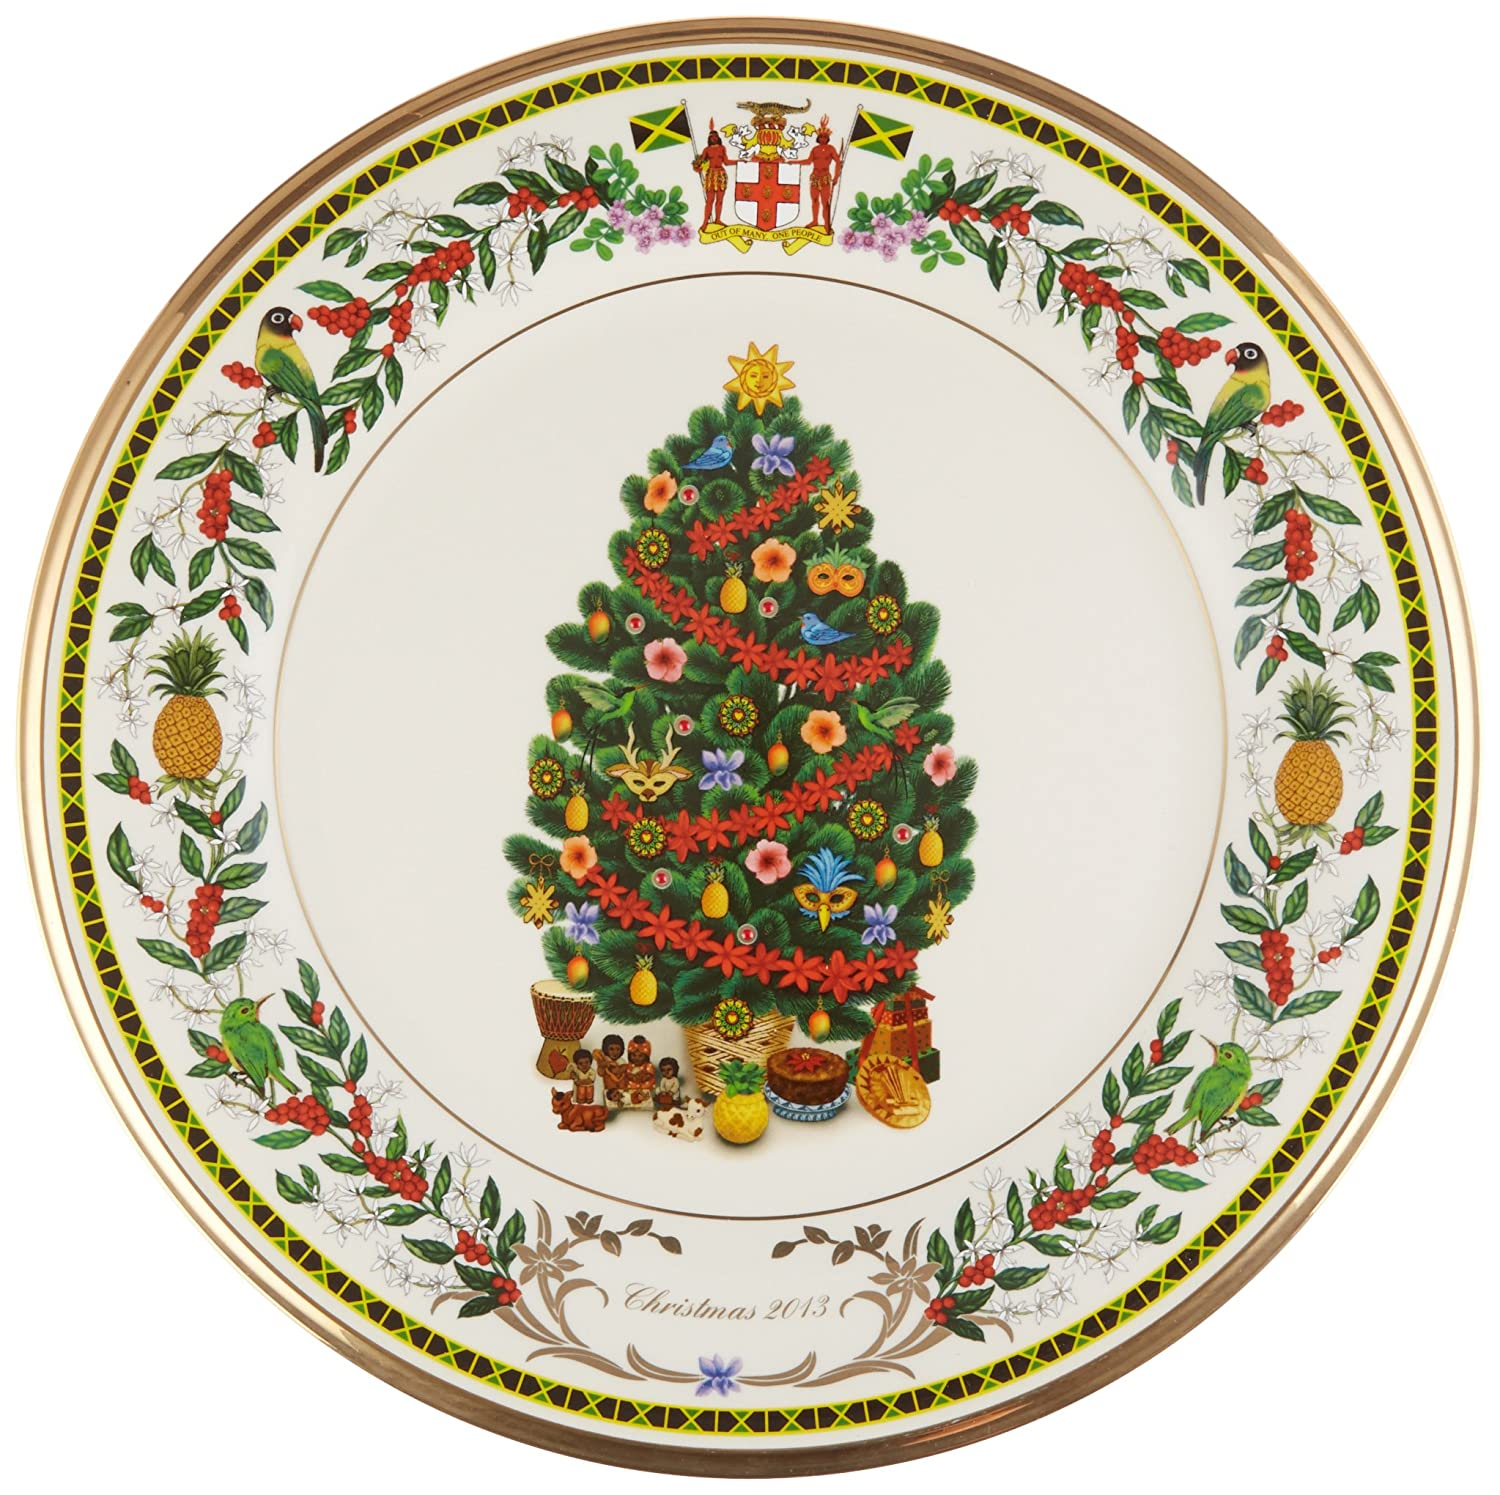 Amazon.com Lenox 2013 Trees Around The World Jamaica Decorative Plate Home \u0026 Kitchen  sc 1 st  Amazon.com & Amazon.com: Lenox 2013 Trees Around The World Jamaica Decorative ...